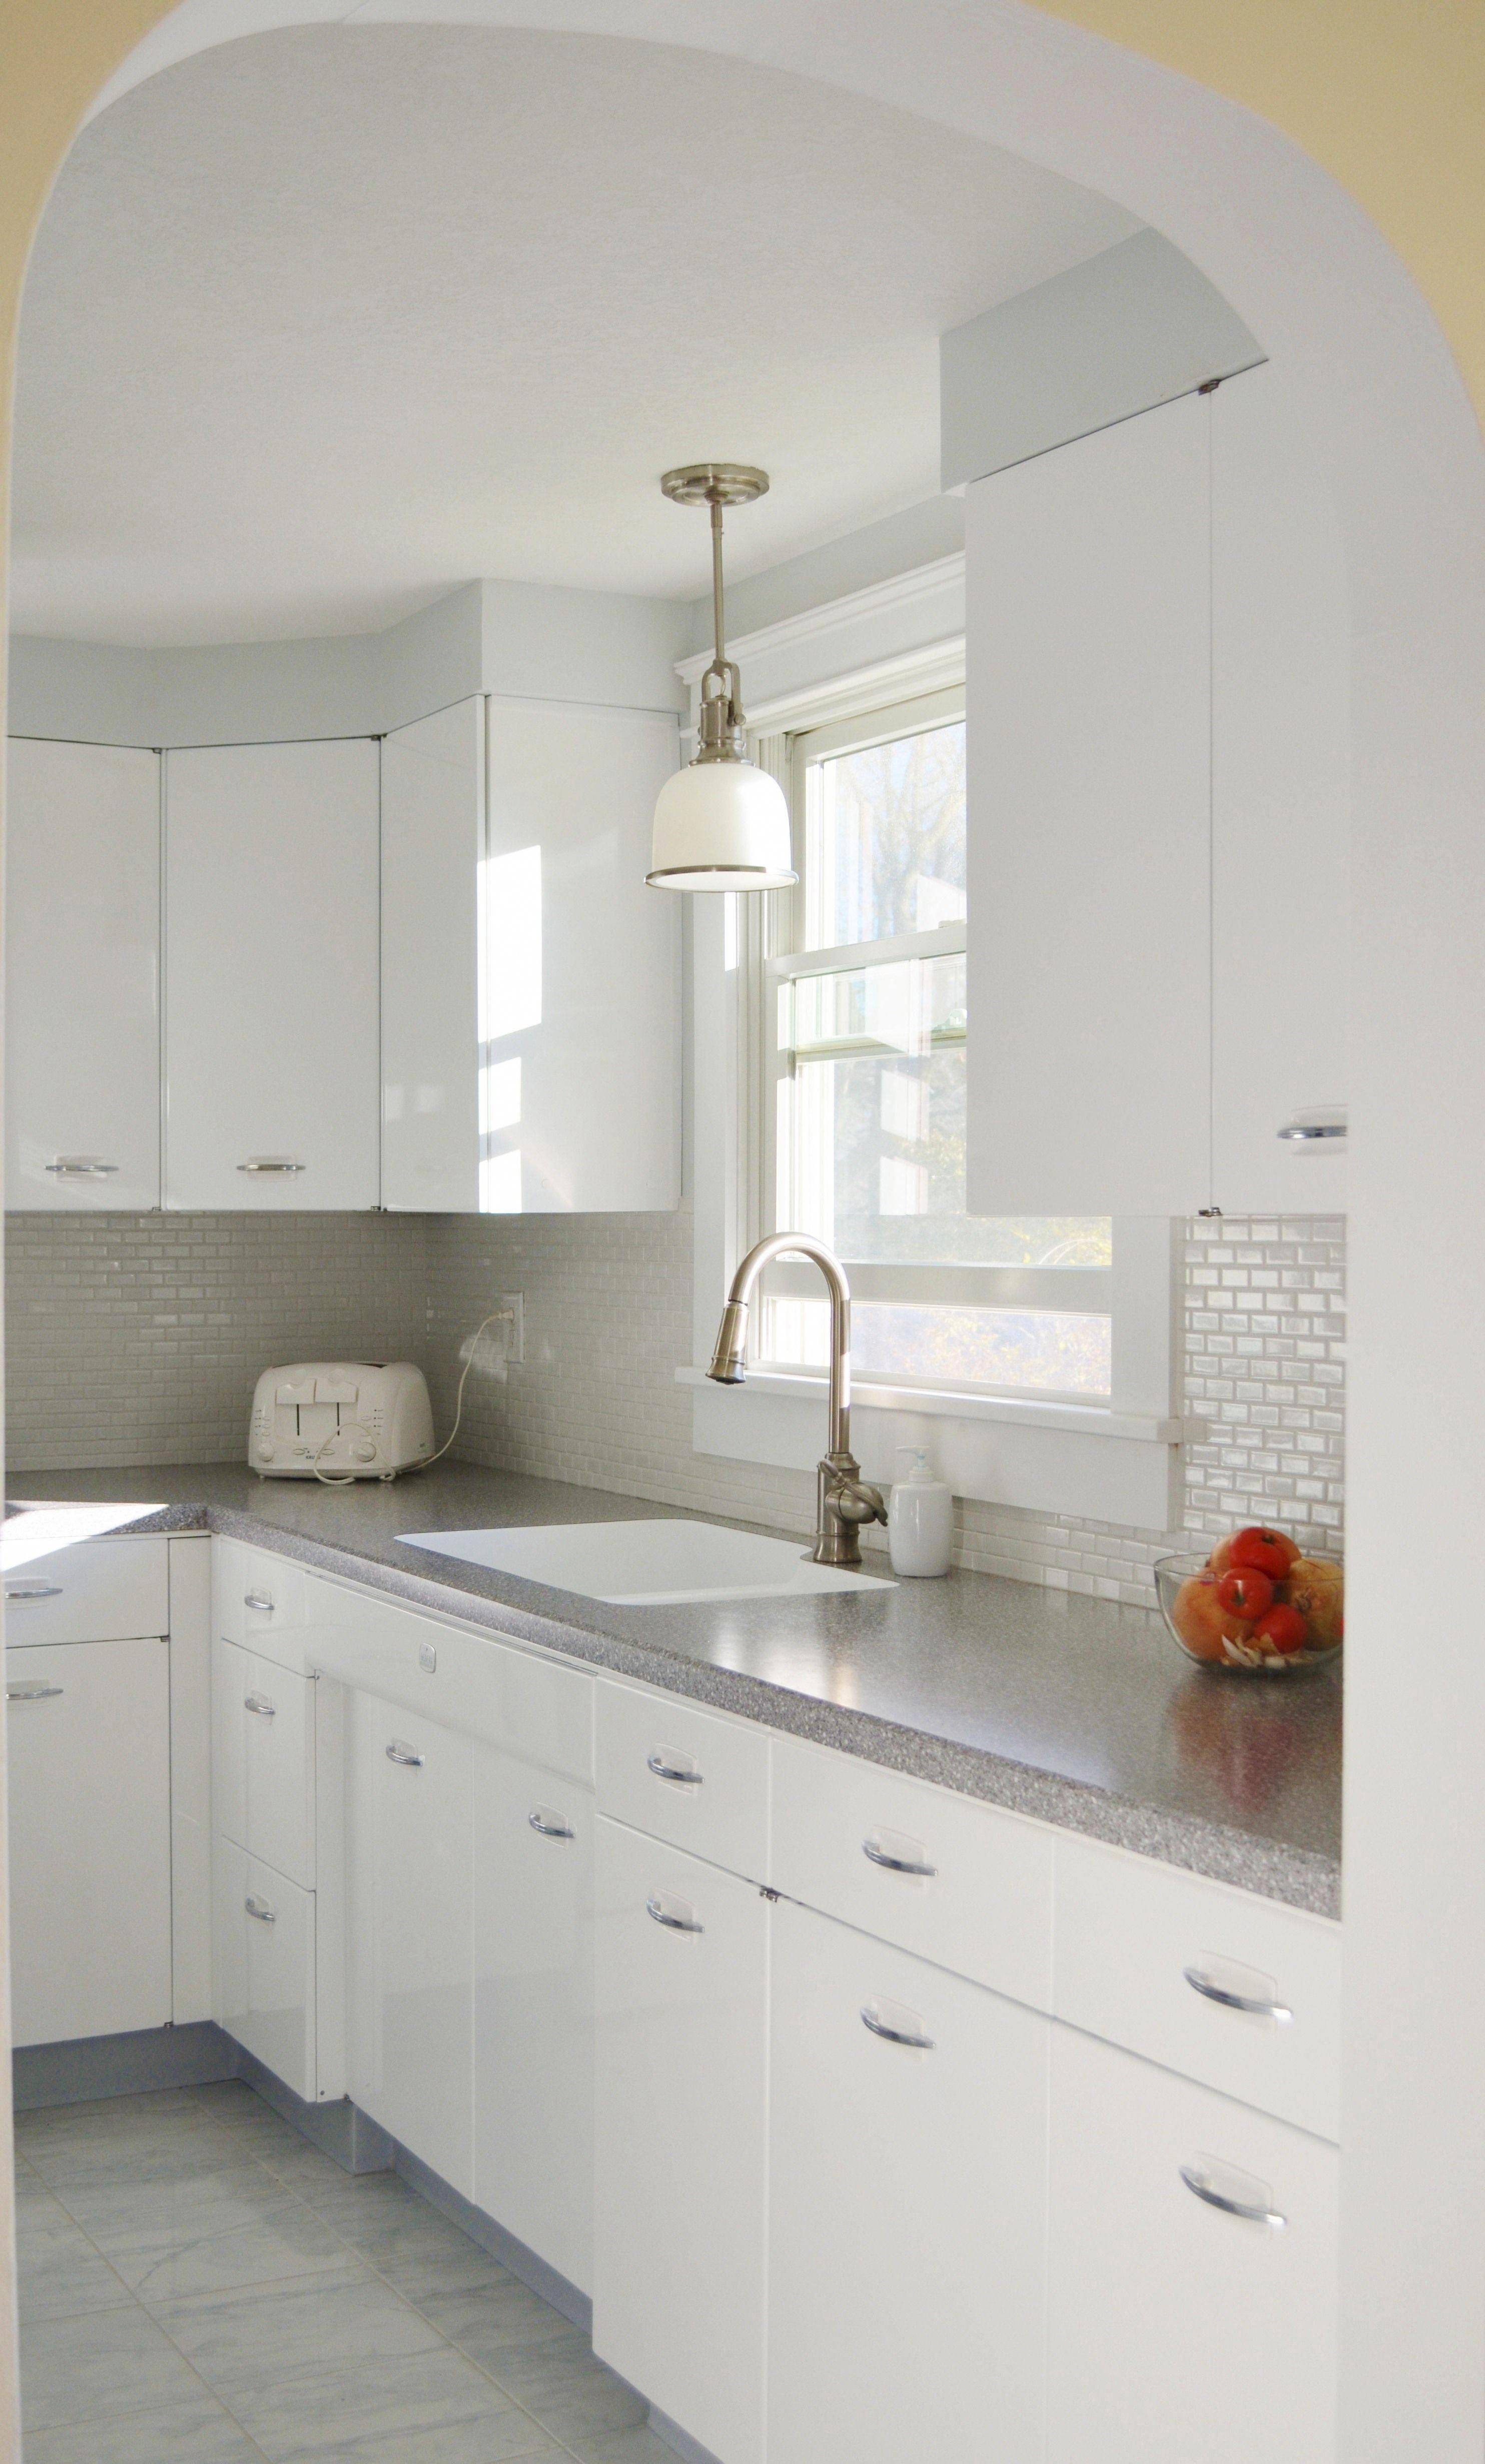 Hackel Construction Inc Remodeled This 1950 S Kitchen By Having The Geneva Brand Metal Cabinets R Metal Kitchen Cabinets Tuscan Kitchen Kitchen Remodel Small